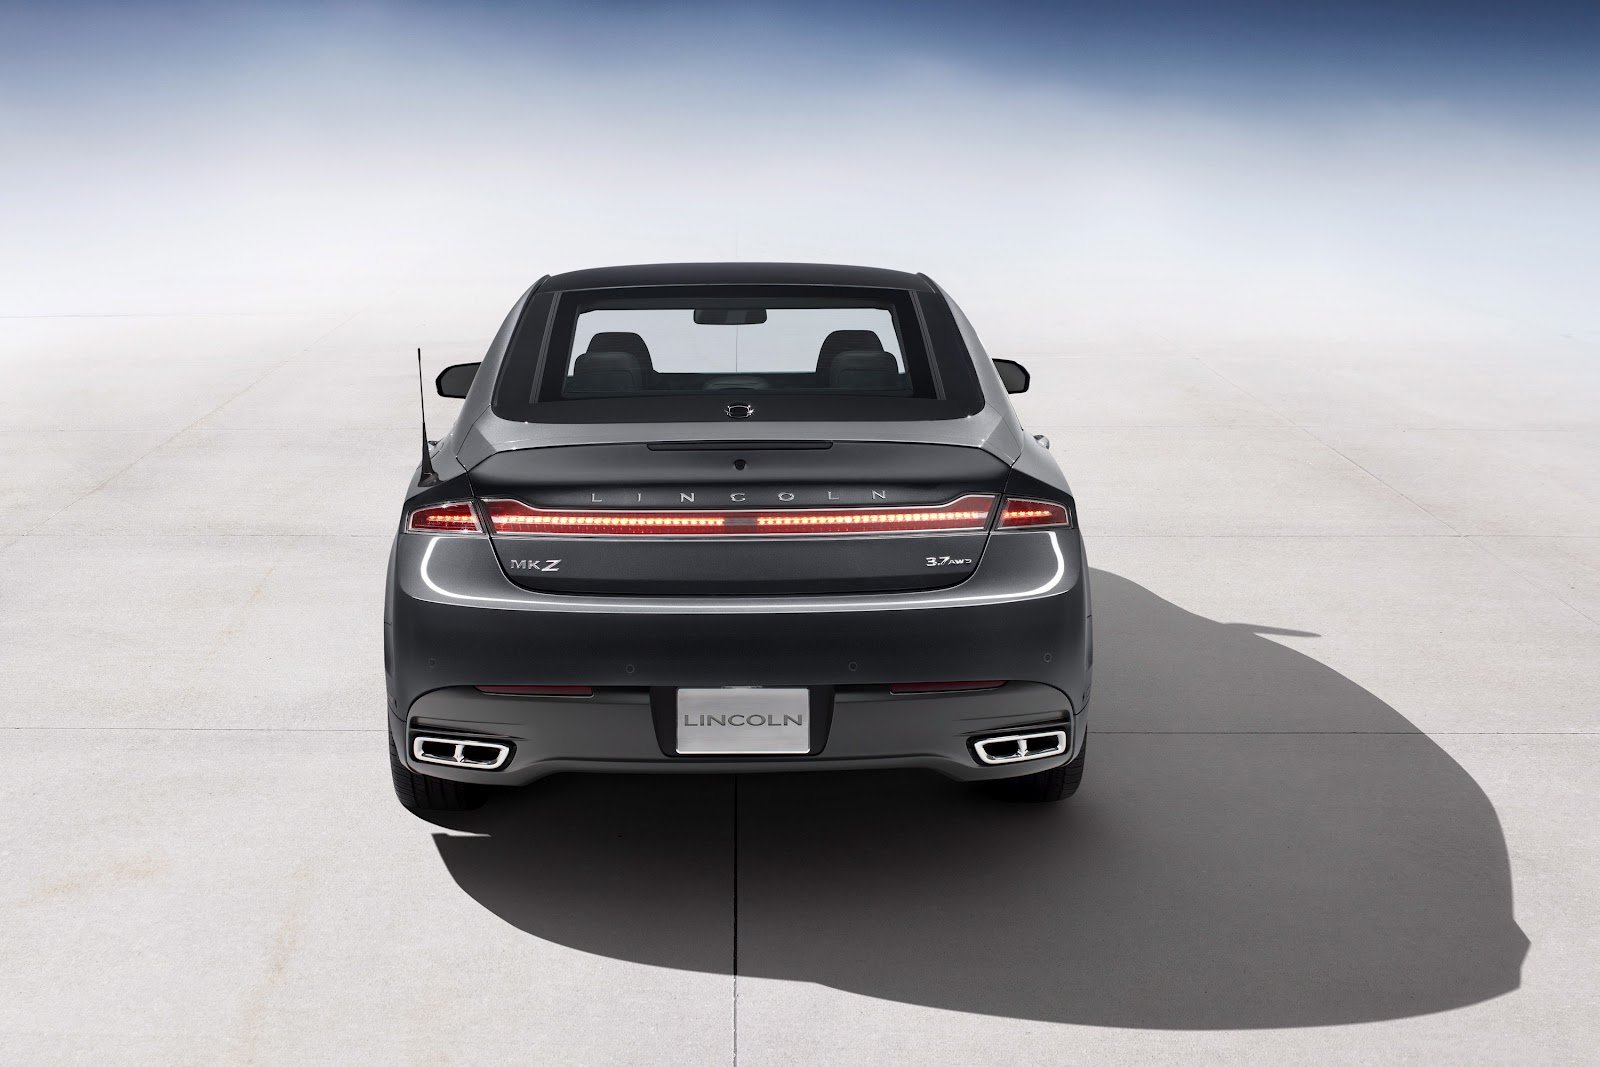 2016 - [Lincoln] MKZ - Page 2 2013+lincoln+mkz+5